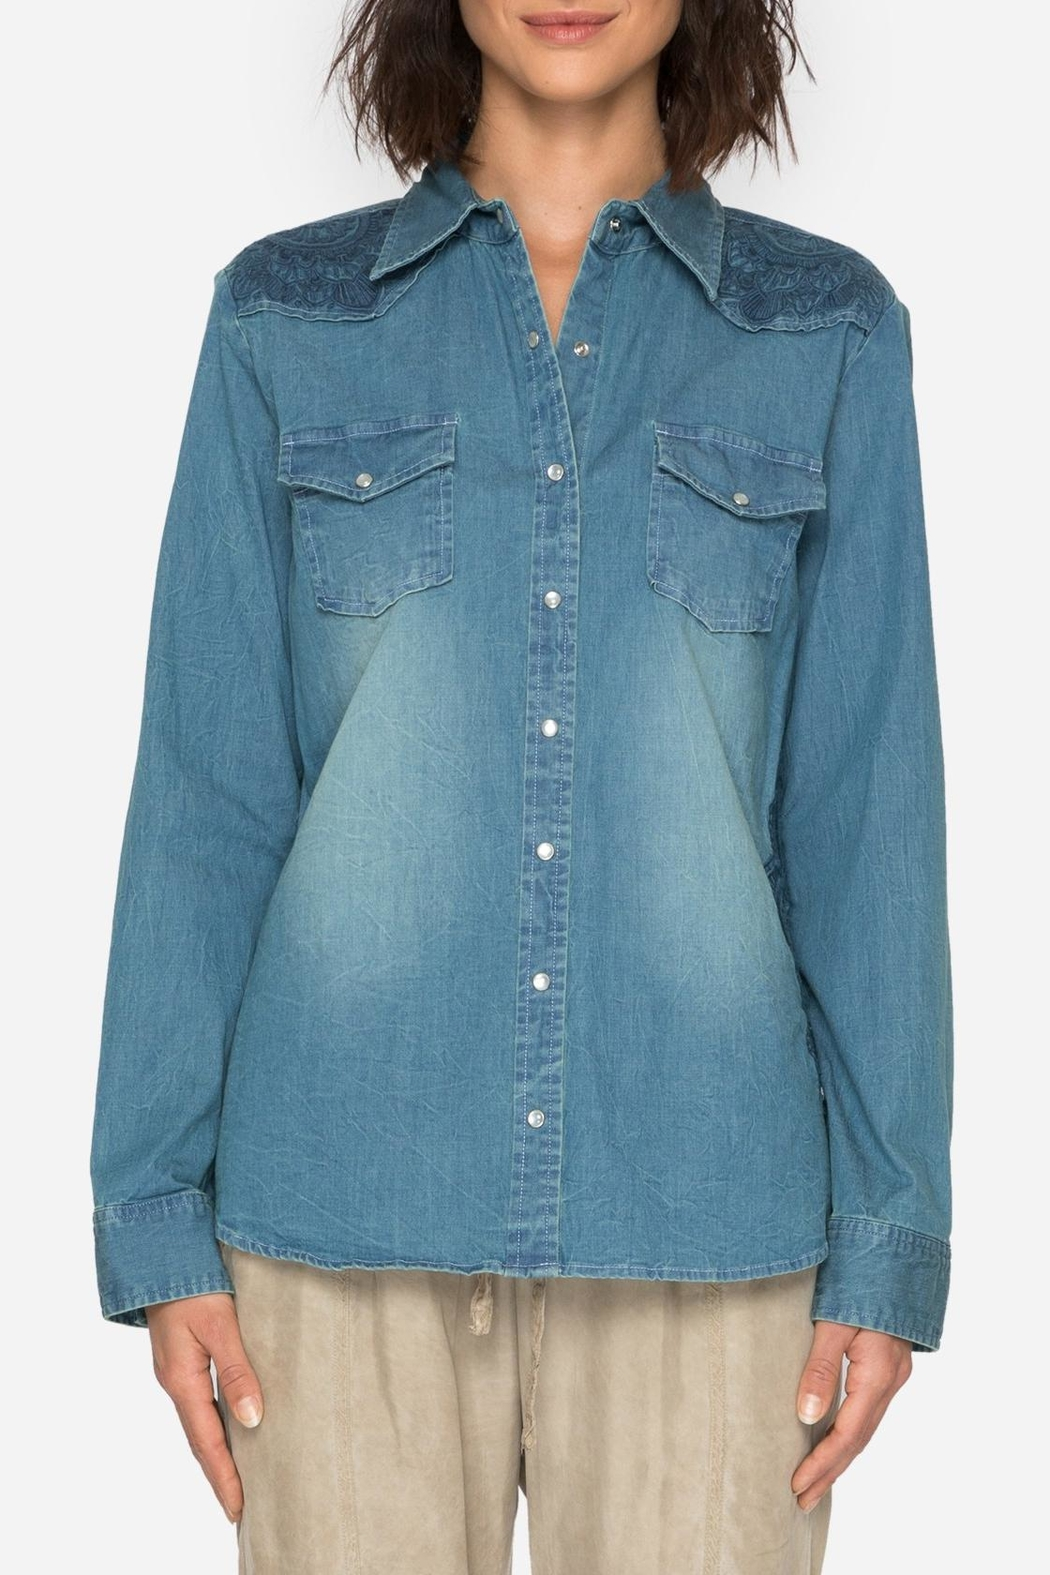 Johnny Was Denim Embroidered Shirt - Front Full Image